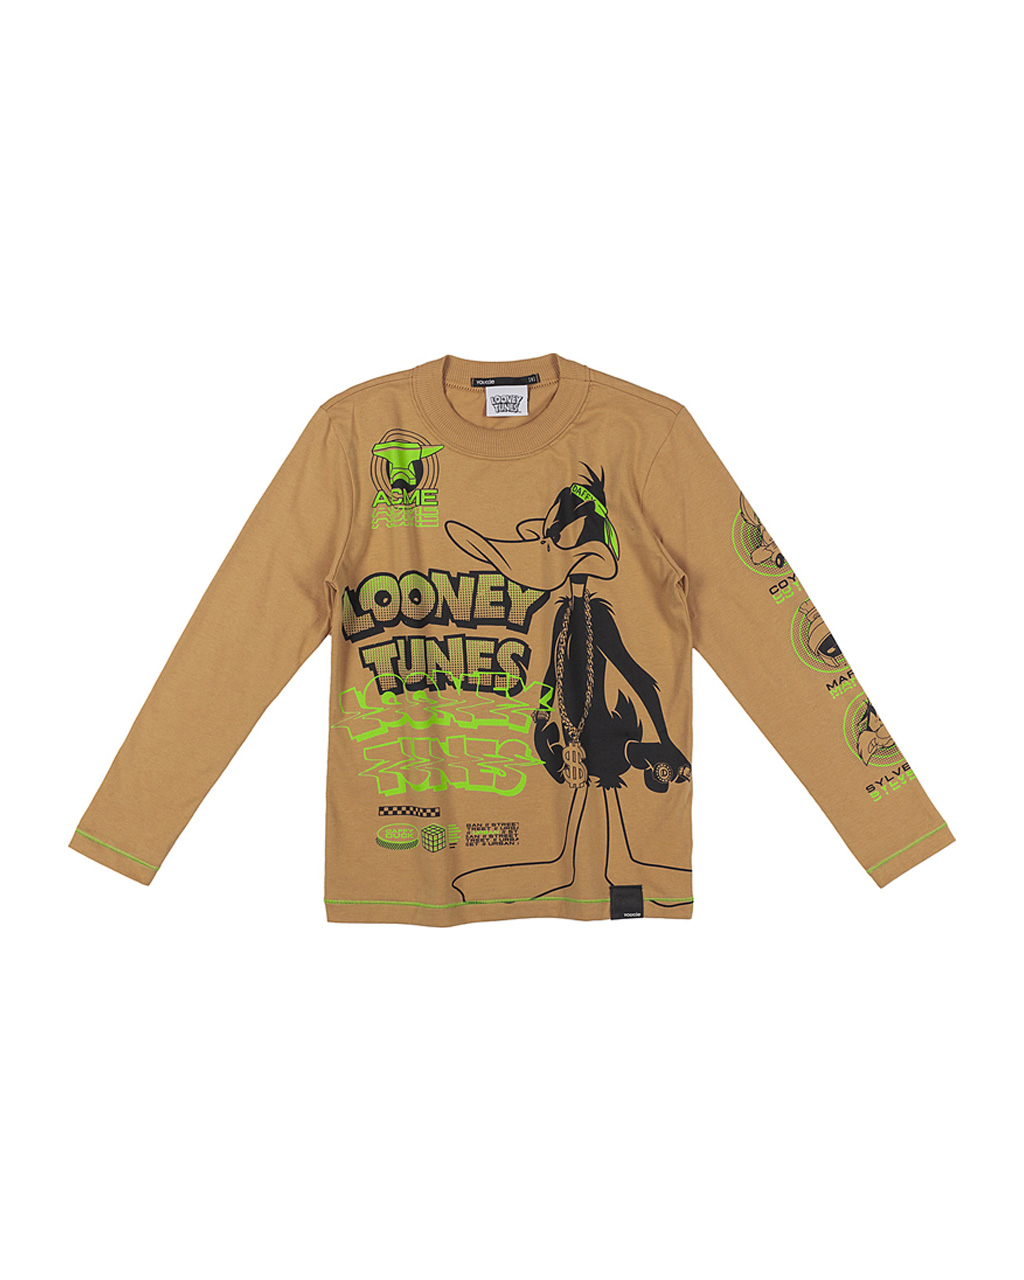 T-Shirt Infantil Patolino Loonney Tunes Youccie